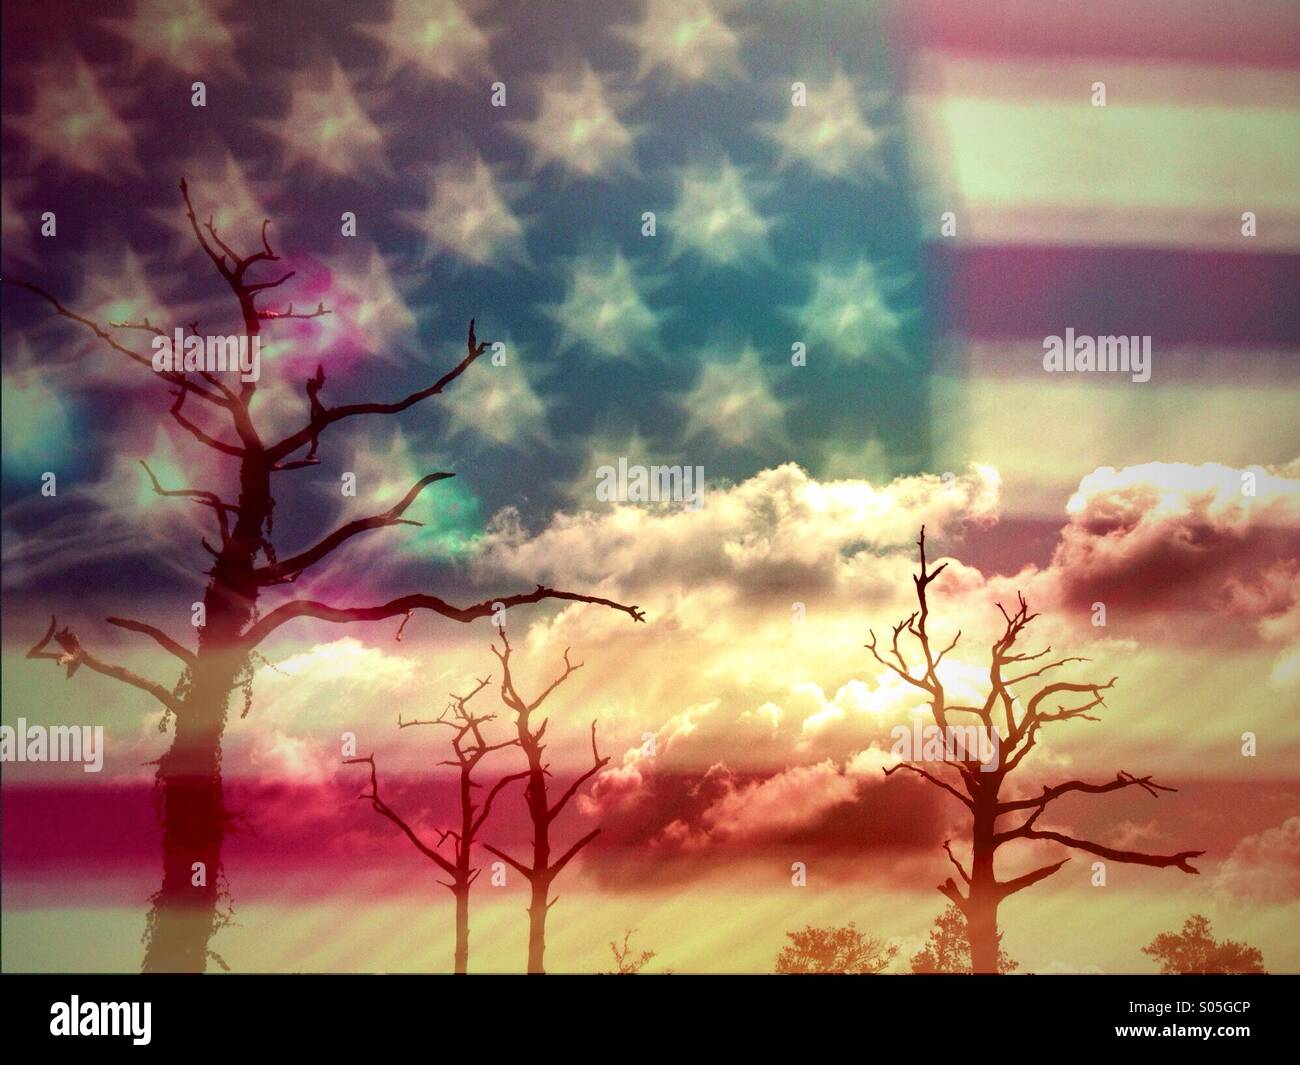 Double_exposure_of_an_American_flag_with